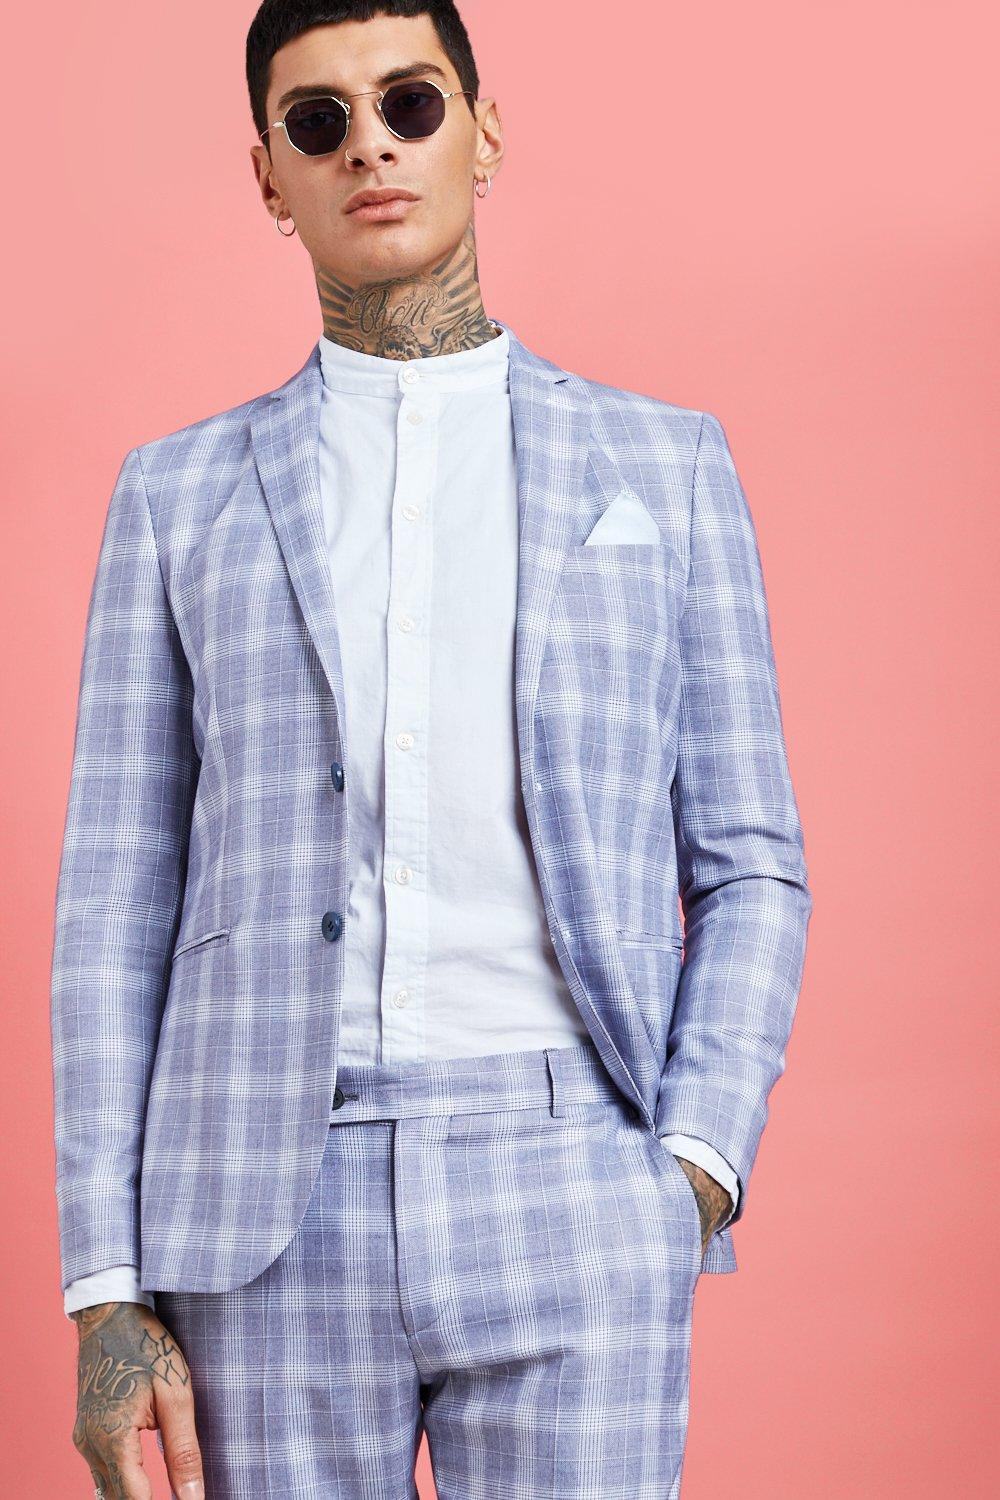 a9a8c9a54b0c7 ... Check Skinny Fit Suit Jacket. Hover to zoom